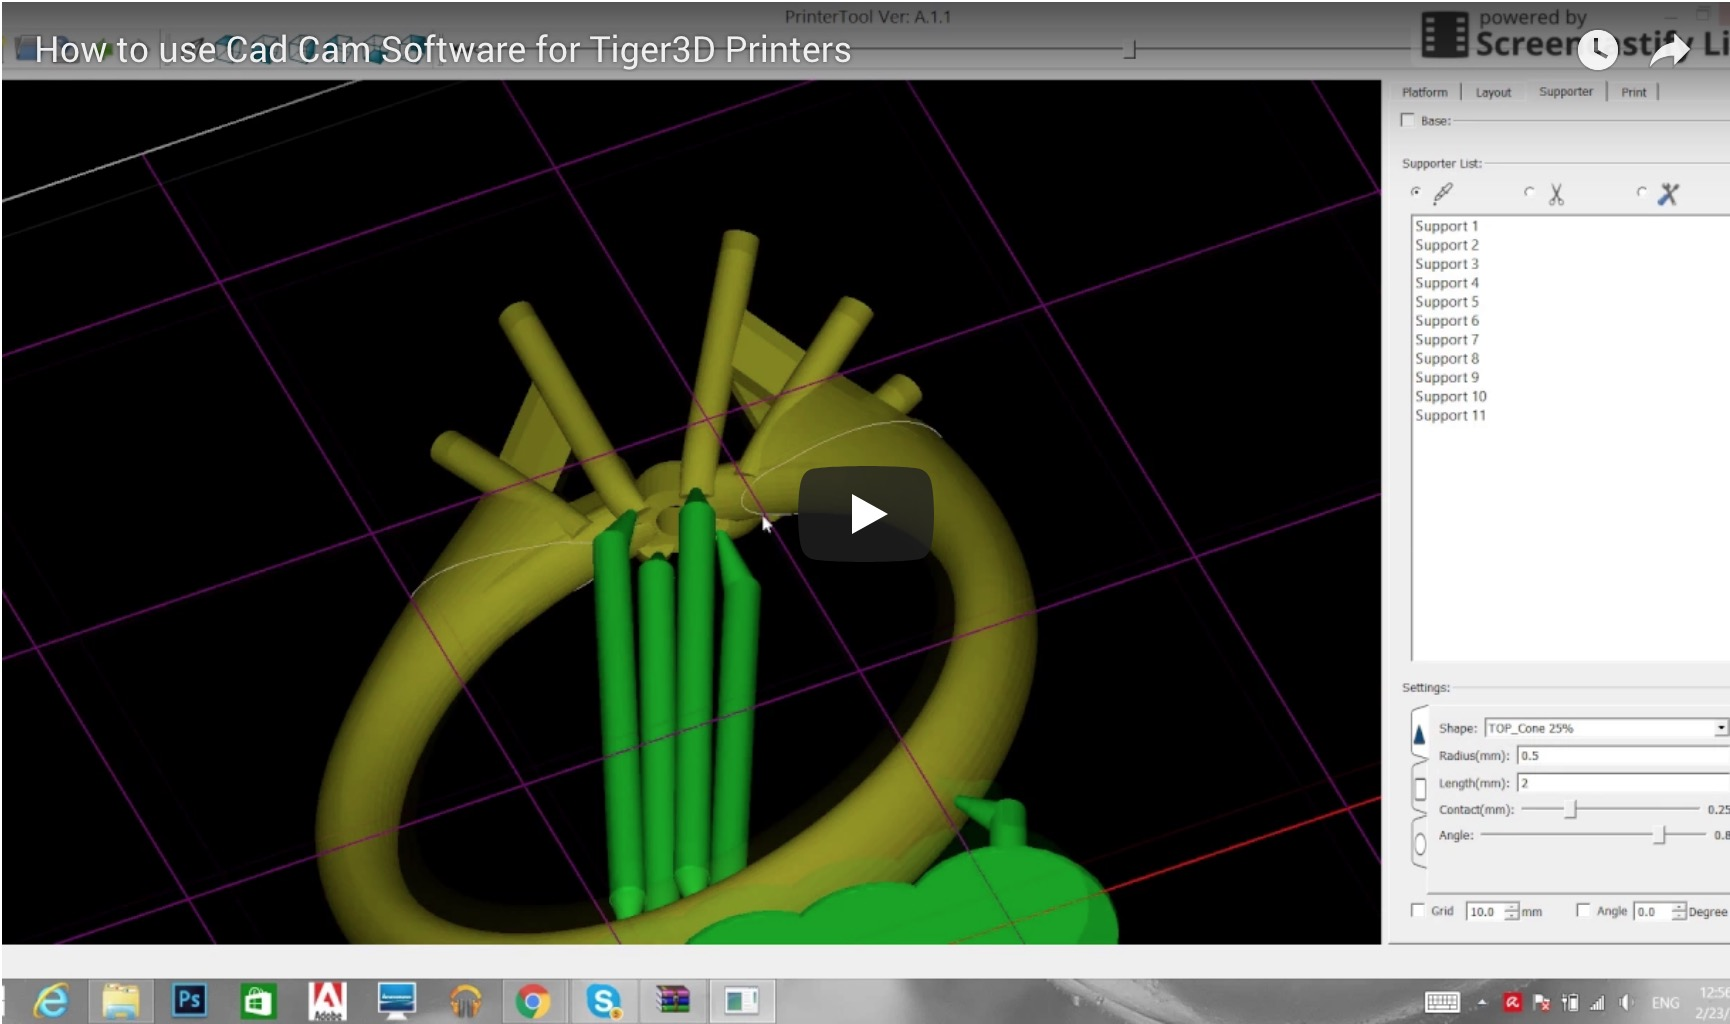 How to use Cad Cam Software for Tiger3D Printers